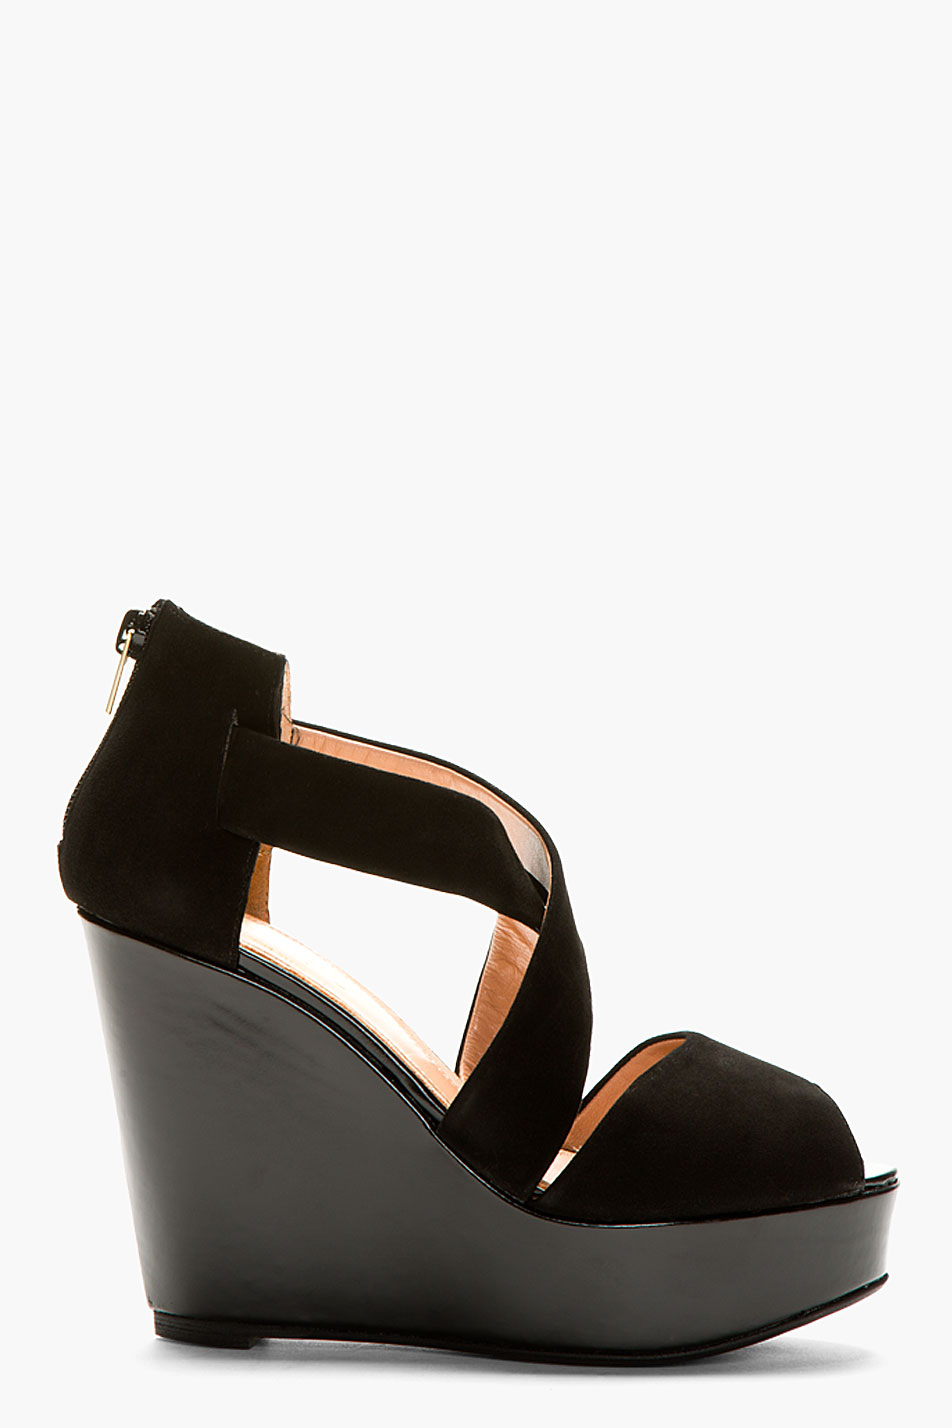 Robert clergerie black suede borset wedge sandals